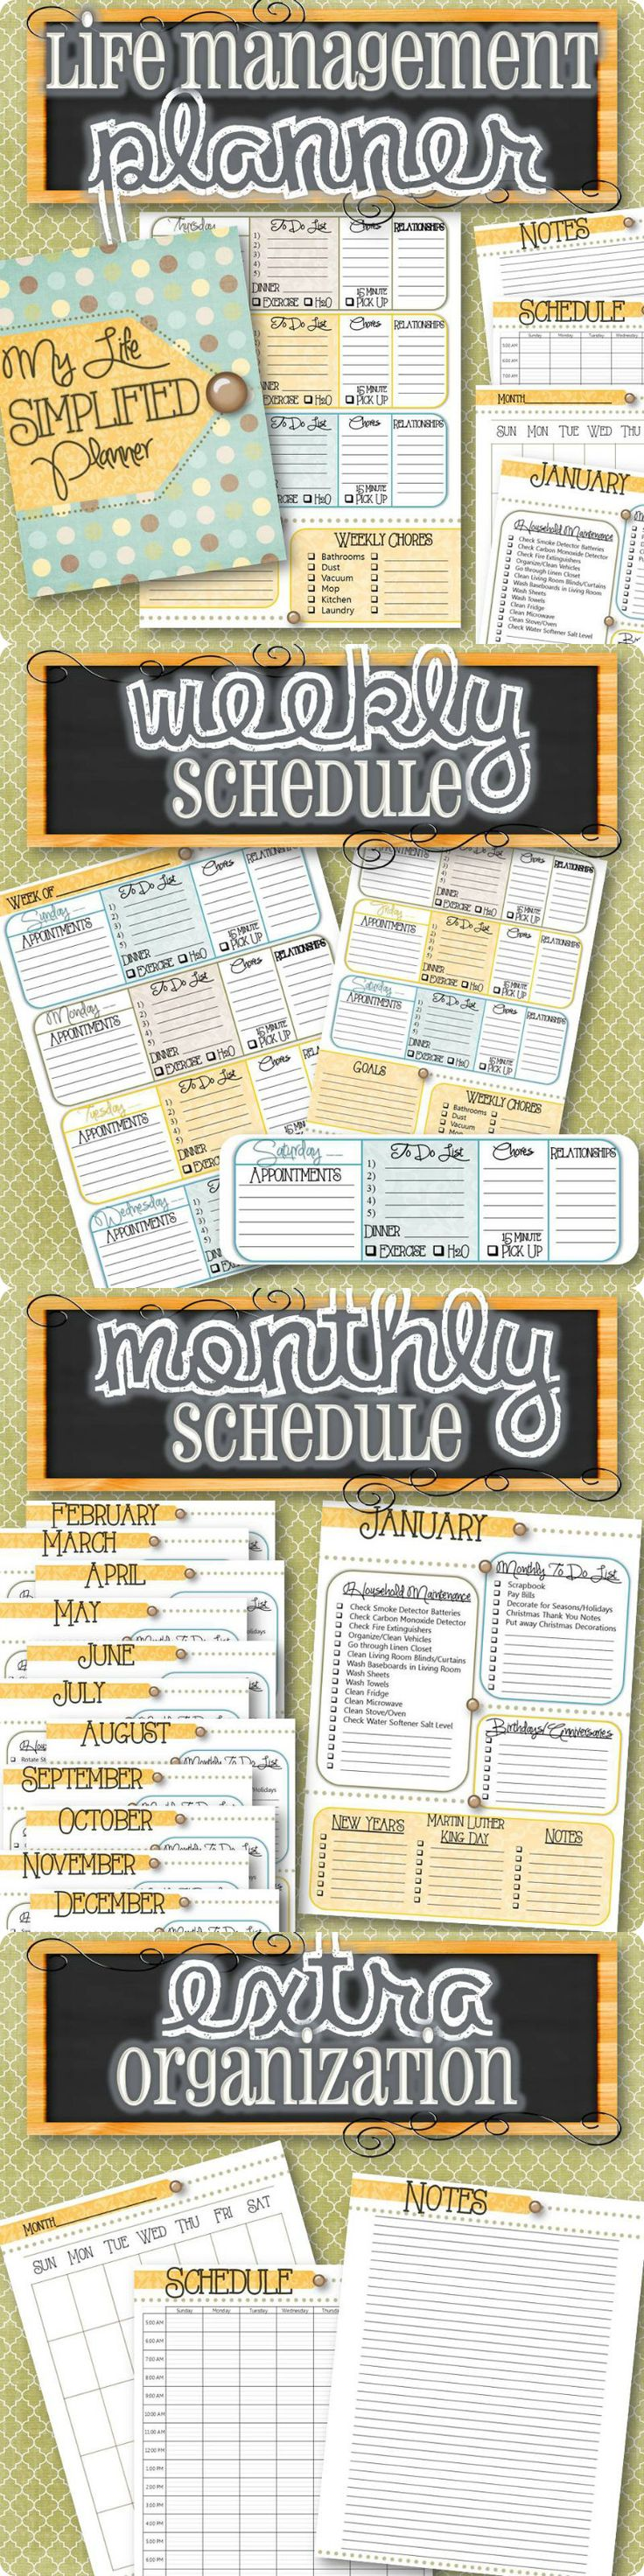 A planner designed to simplify your life! Weekly planning pages to help track Appointments, To Do's, Chores, Menu Planning, Relationships, Exercise, Water Drinking and a Cleaning Schedule! Monthly planning lists to remind you to plan for Holidays, throw out old medicine, clean your blinds, defrost your freezer, rotate clothing, check your smoke detector, remember important birthdays and special occasions, and more! This planner simplifies it all so you stay on track with life's busy…